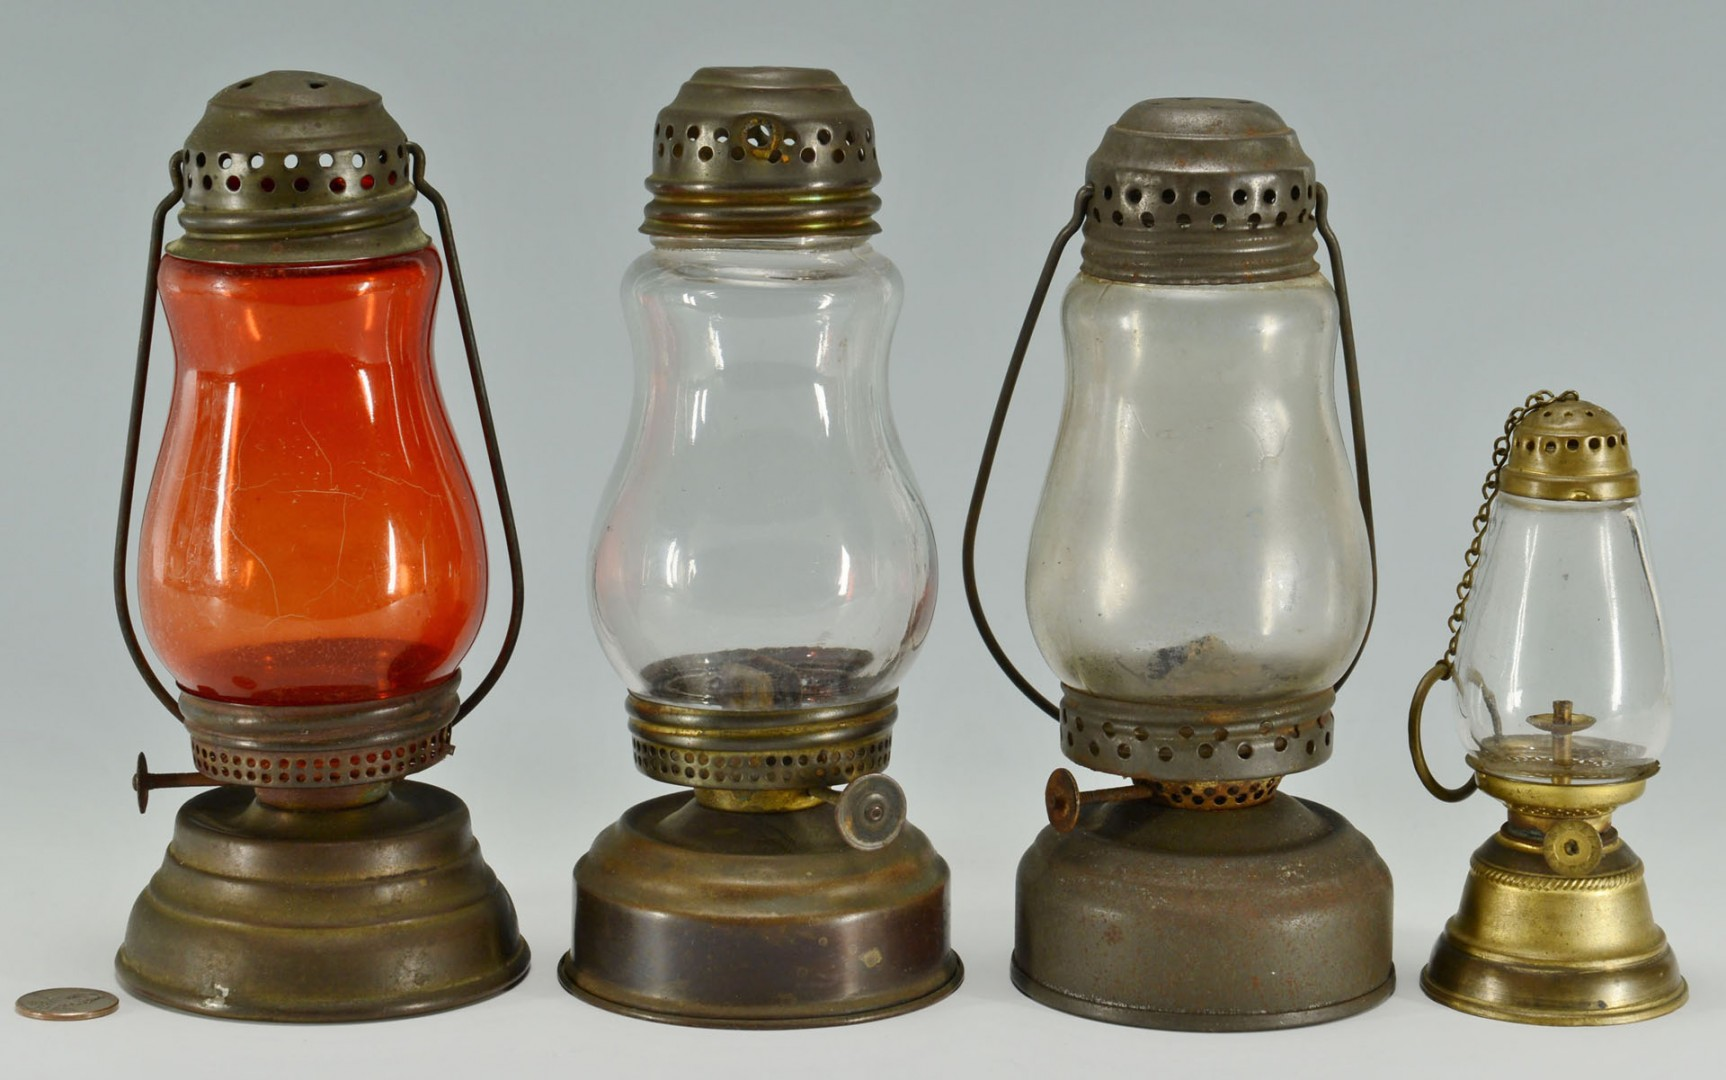 4 Skater's Lanterns Including Baby Lantern